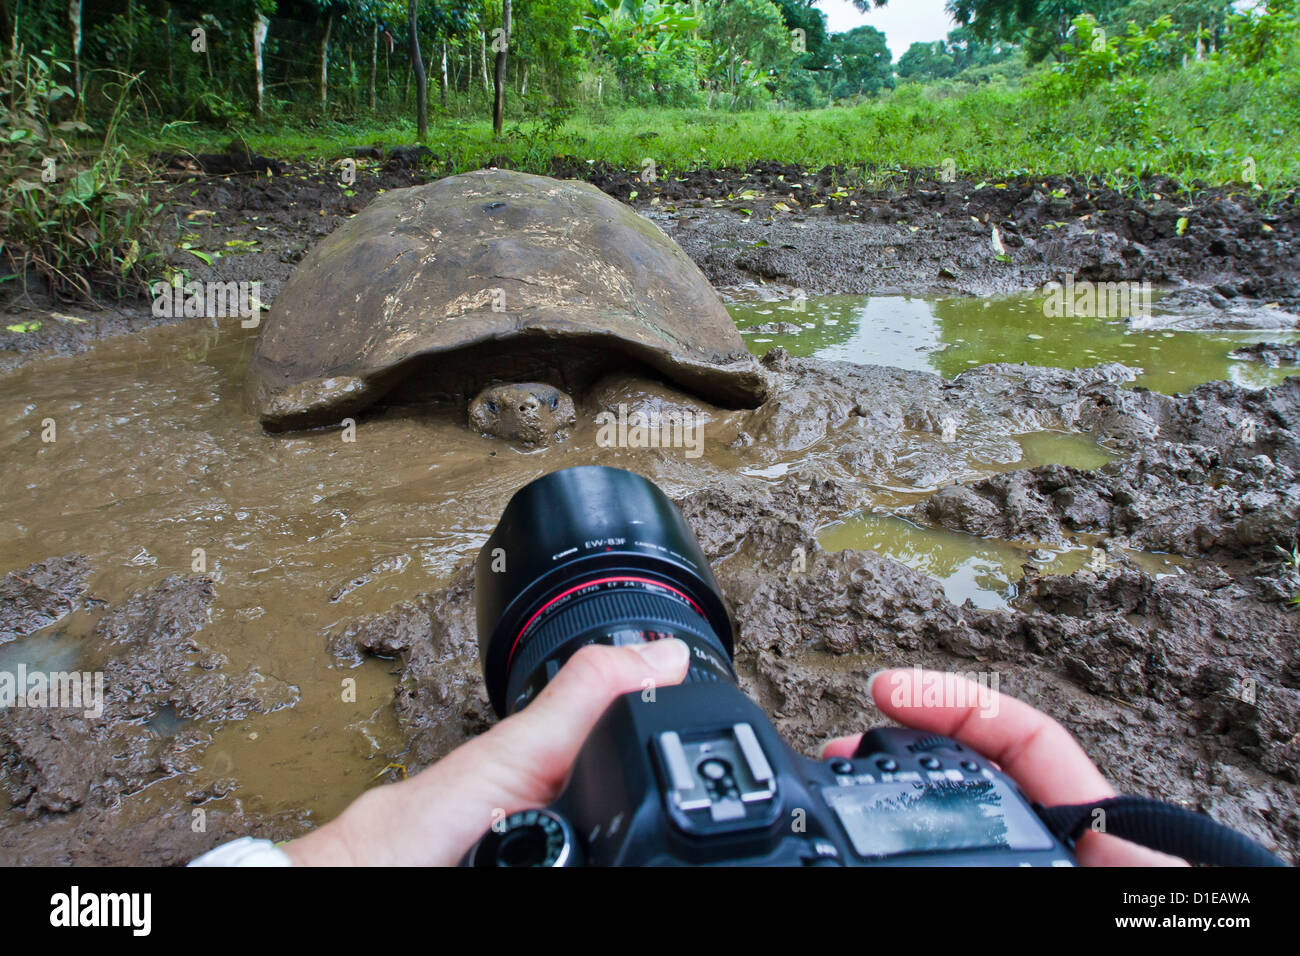 Wild Galapagos tortoise (Geochelone elephantopus), Santa Cruz Island, Galapagos Islands, Ecuador, South America Stock Photo